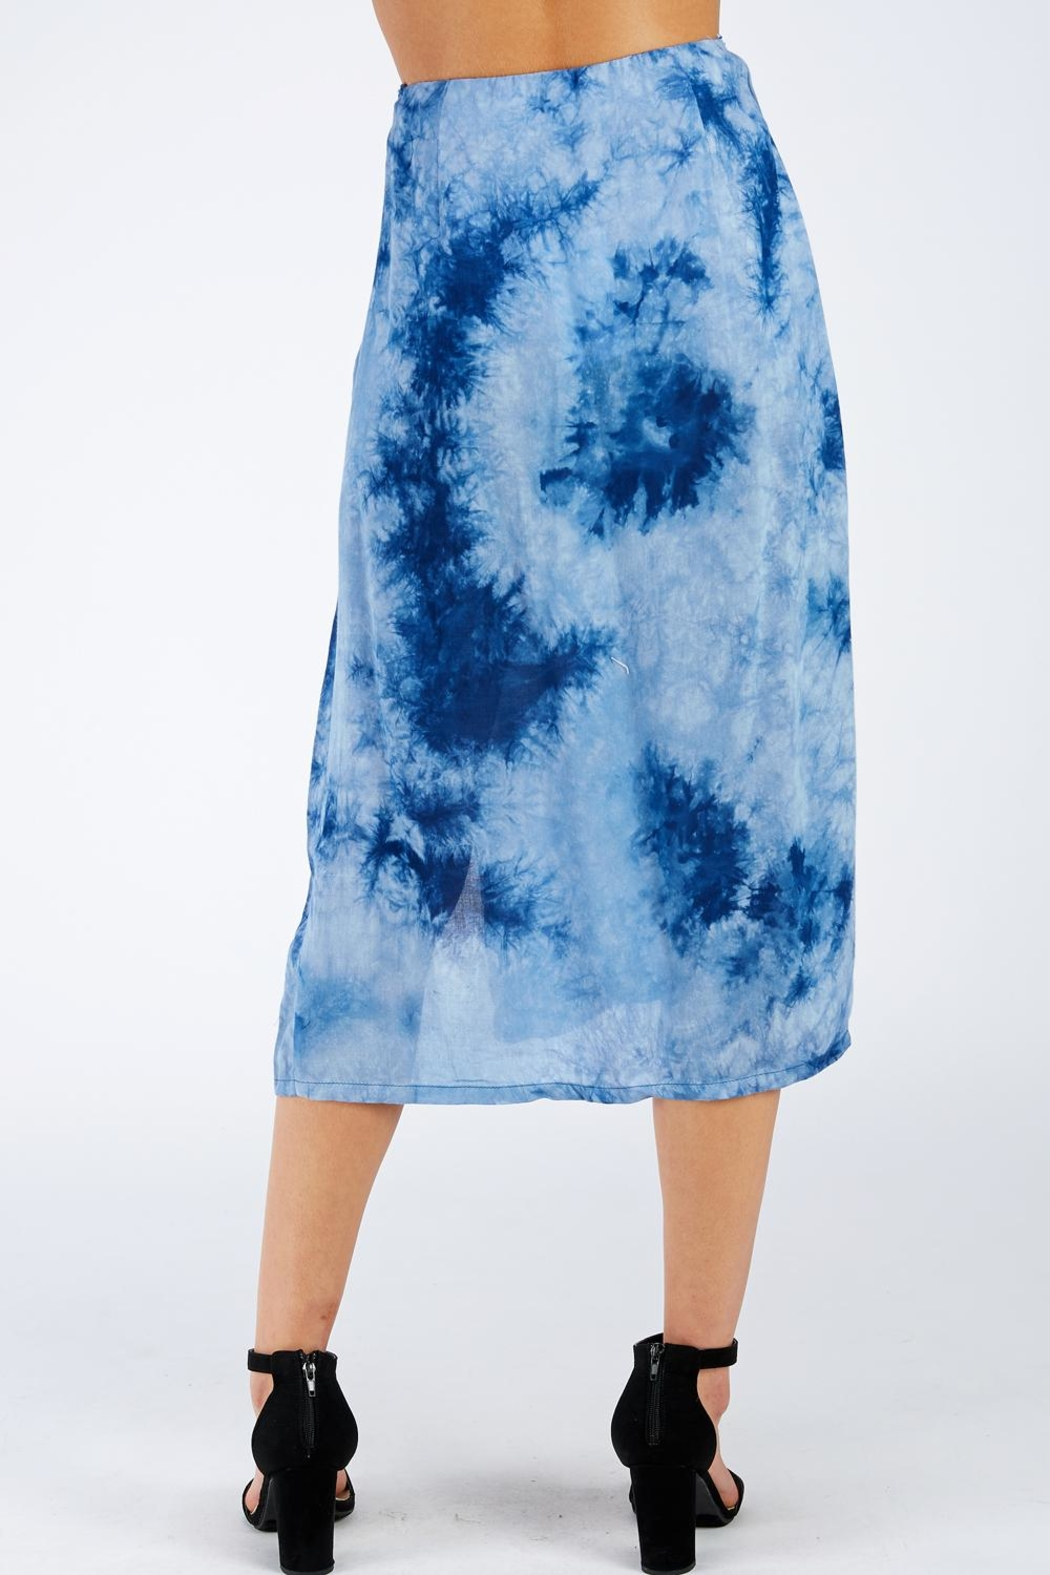 Cotton Candy LA Tie Dye Skirt - Side Cropped Image